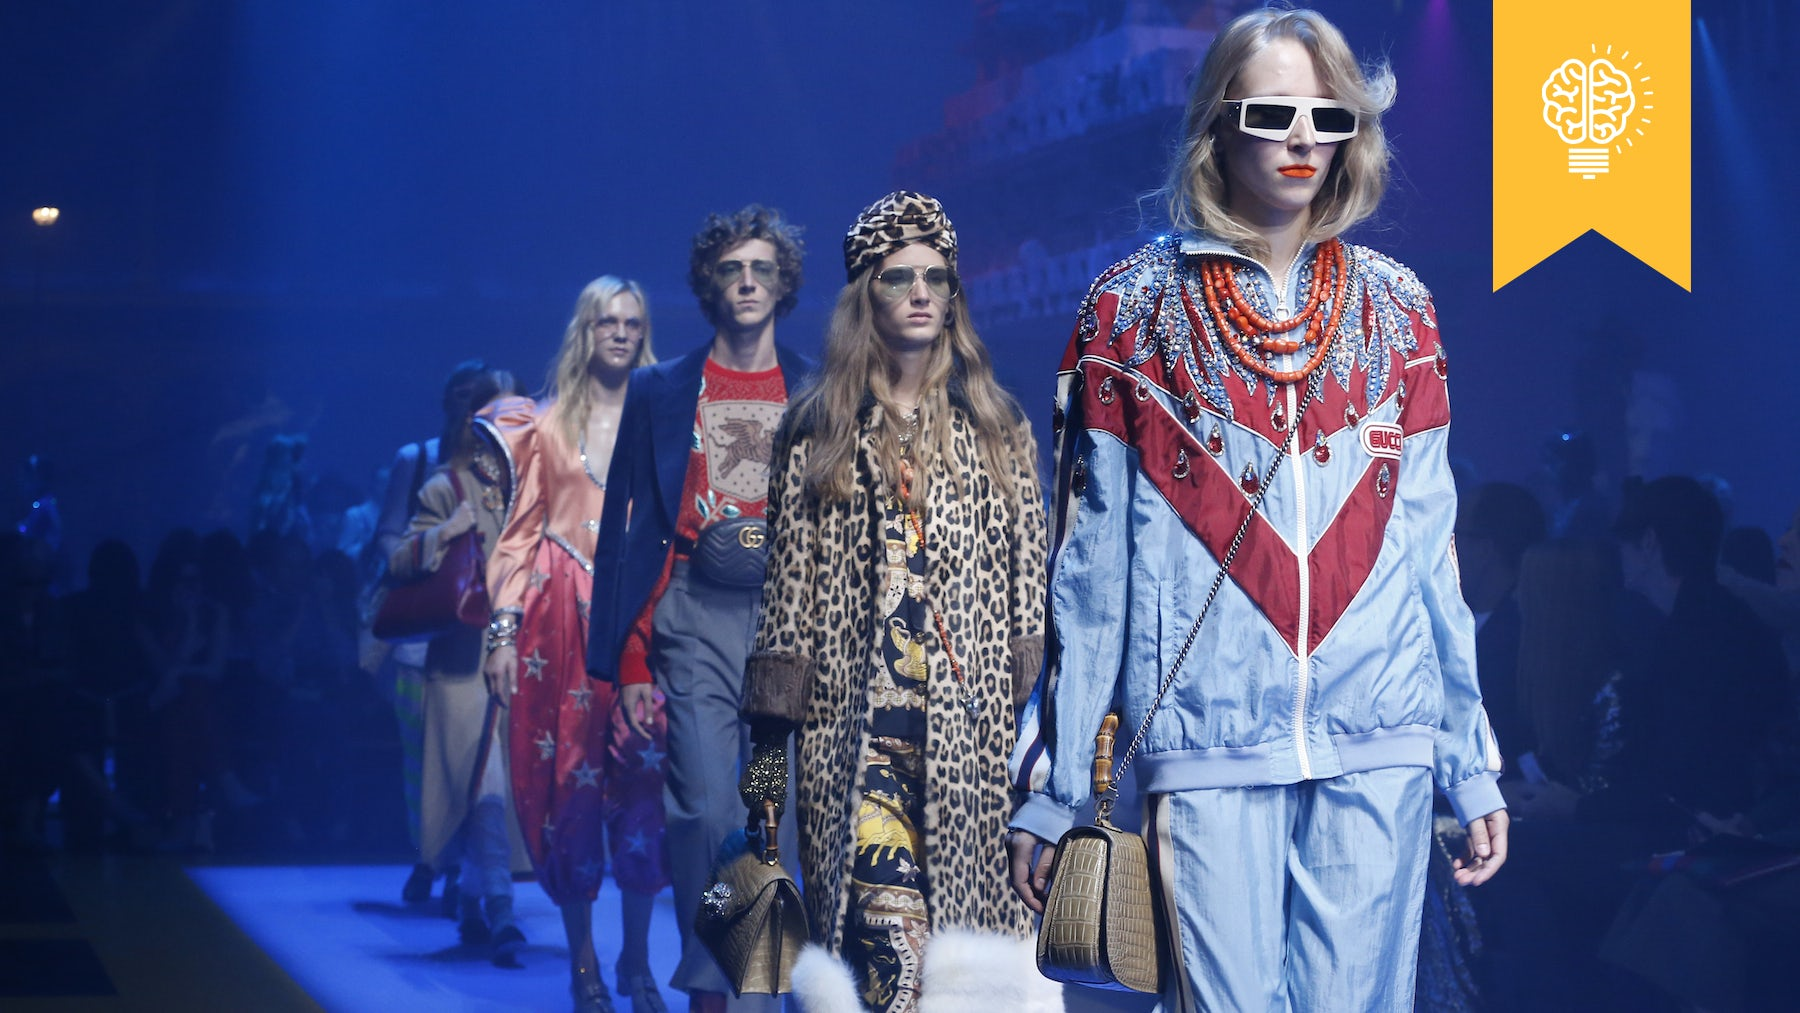 Article cover of Gucci's Rise Signals a New Model for Fashion